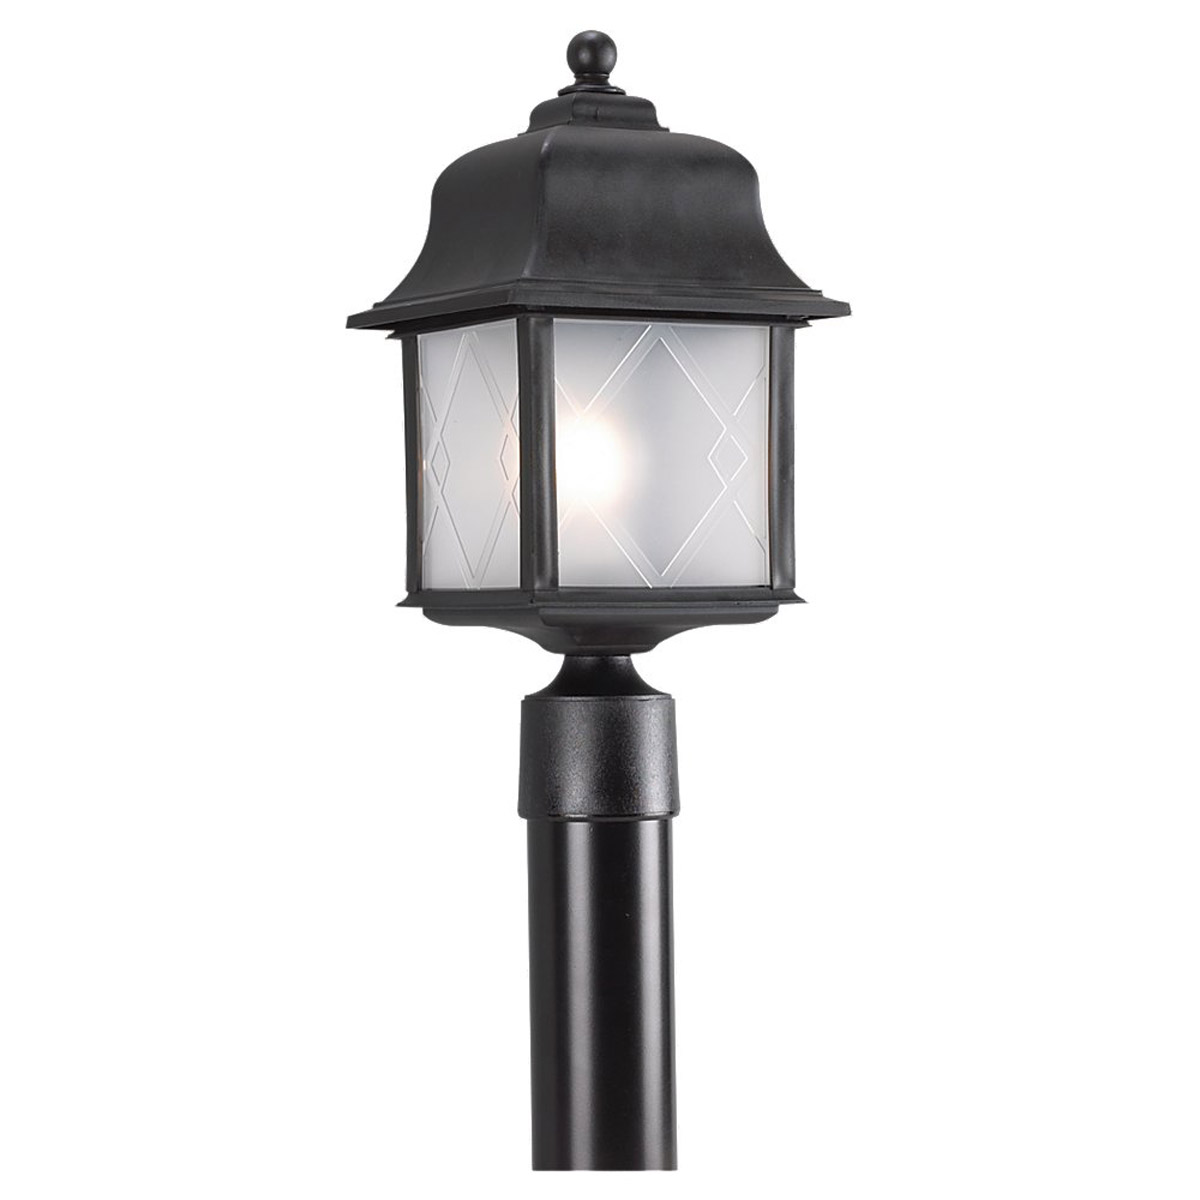 Sea Gull Lighting Harbor Point 1 Light Outdoor Post Lantern in Black 82092-12